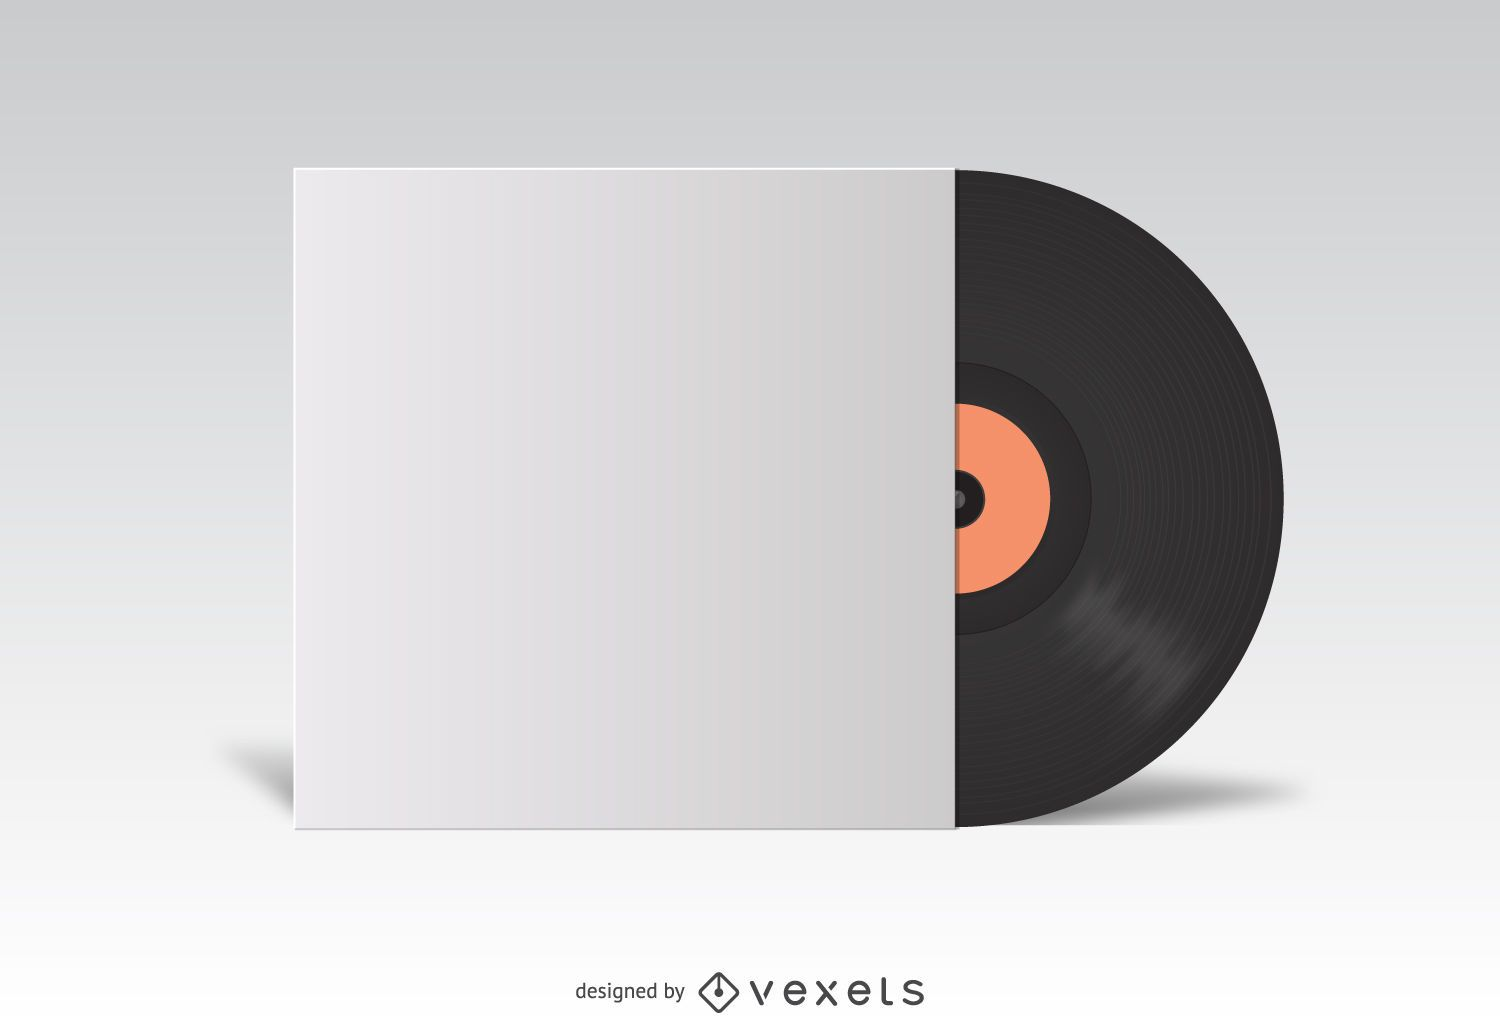 Mockup Box Open Free Vinyl Lp Cover White Mockup - Vector Download